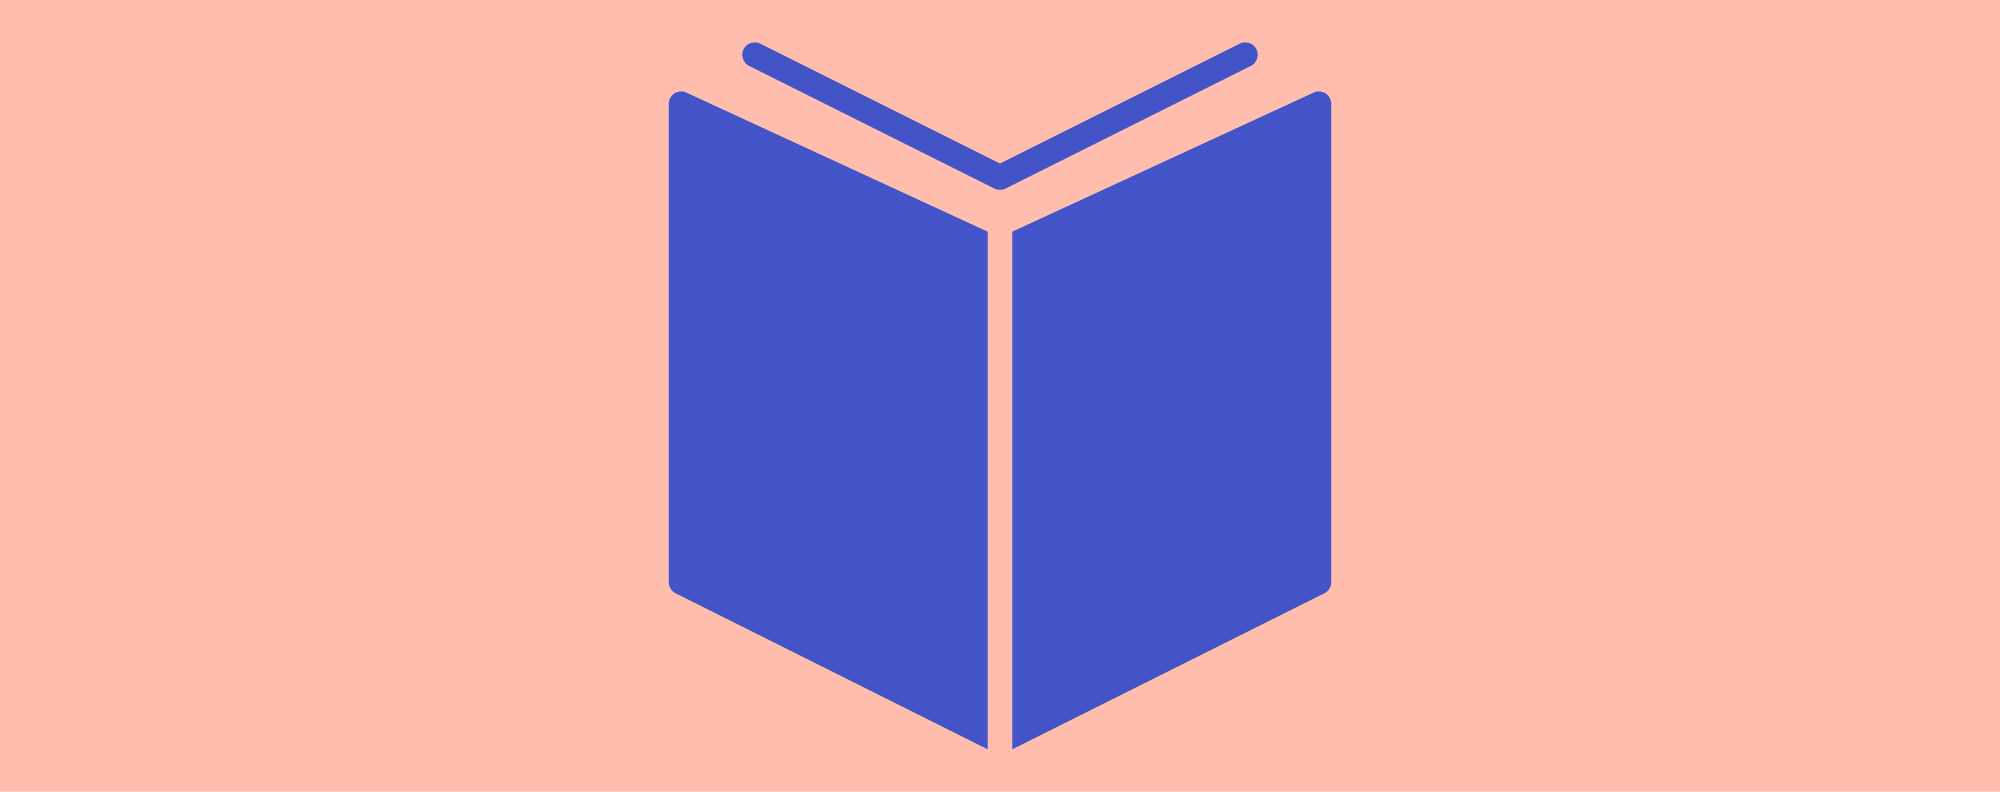 Icon image of an open blue book on a pale pink background